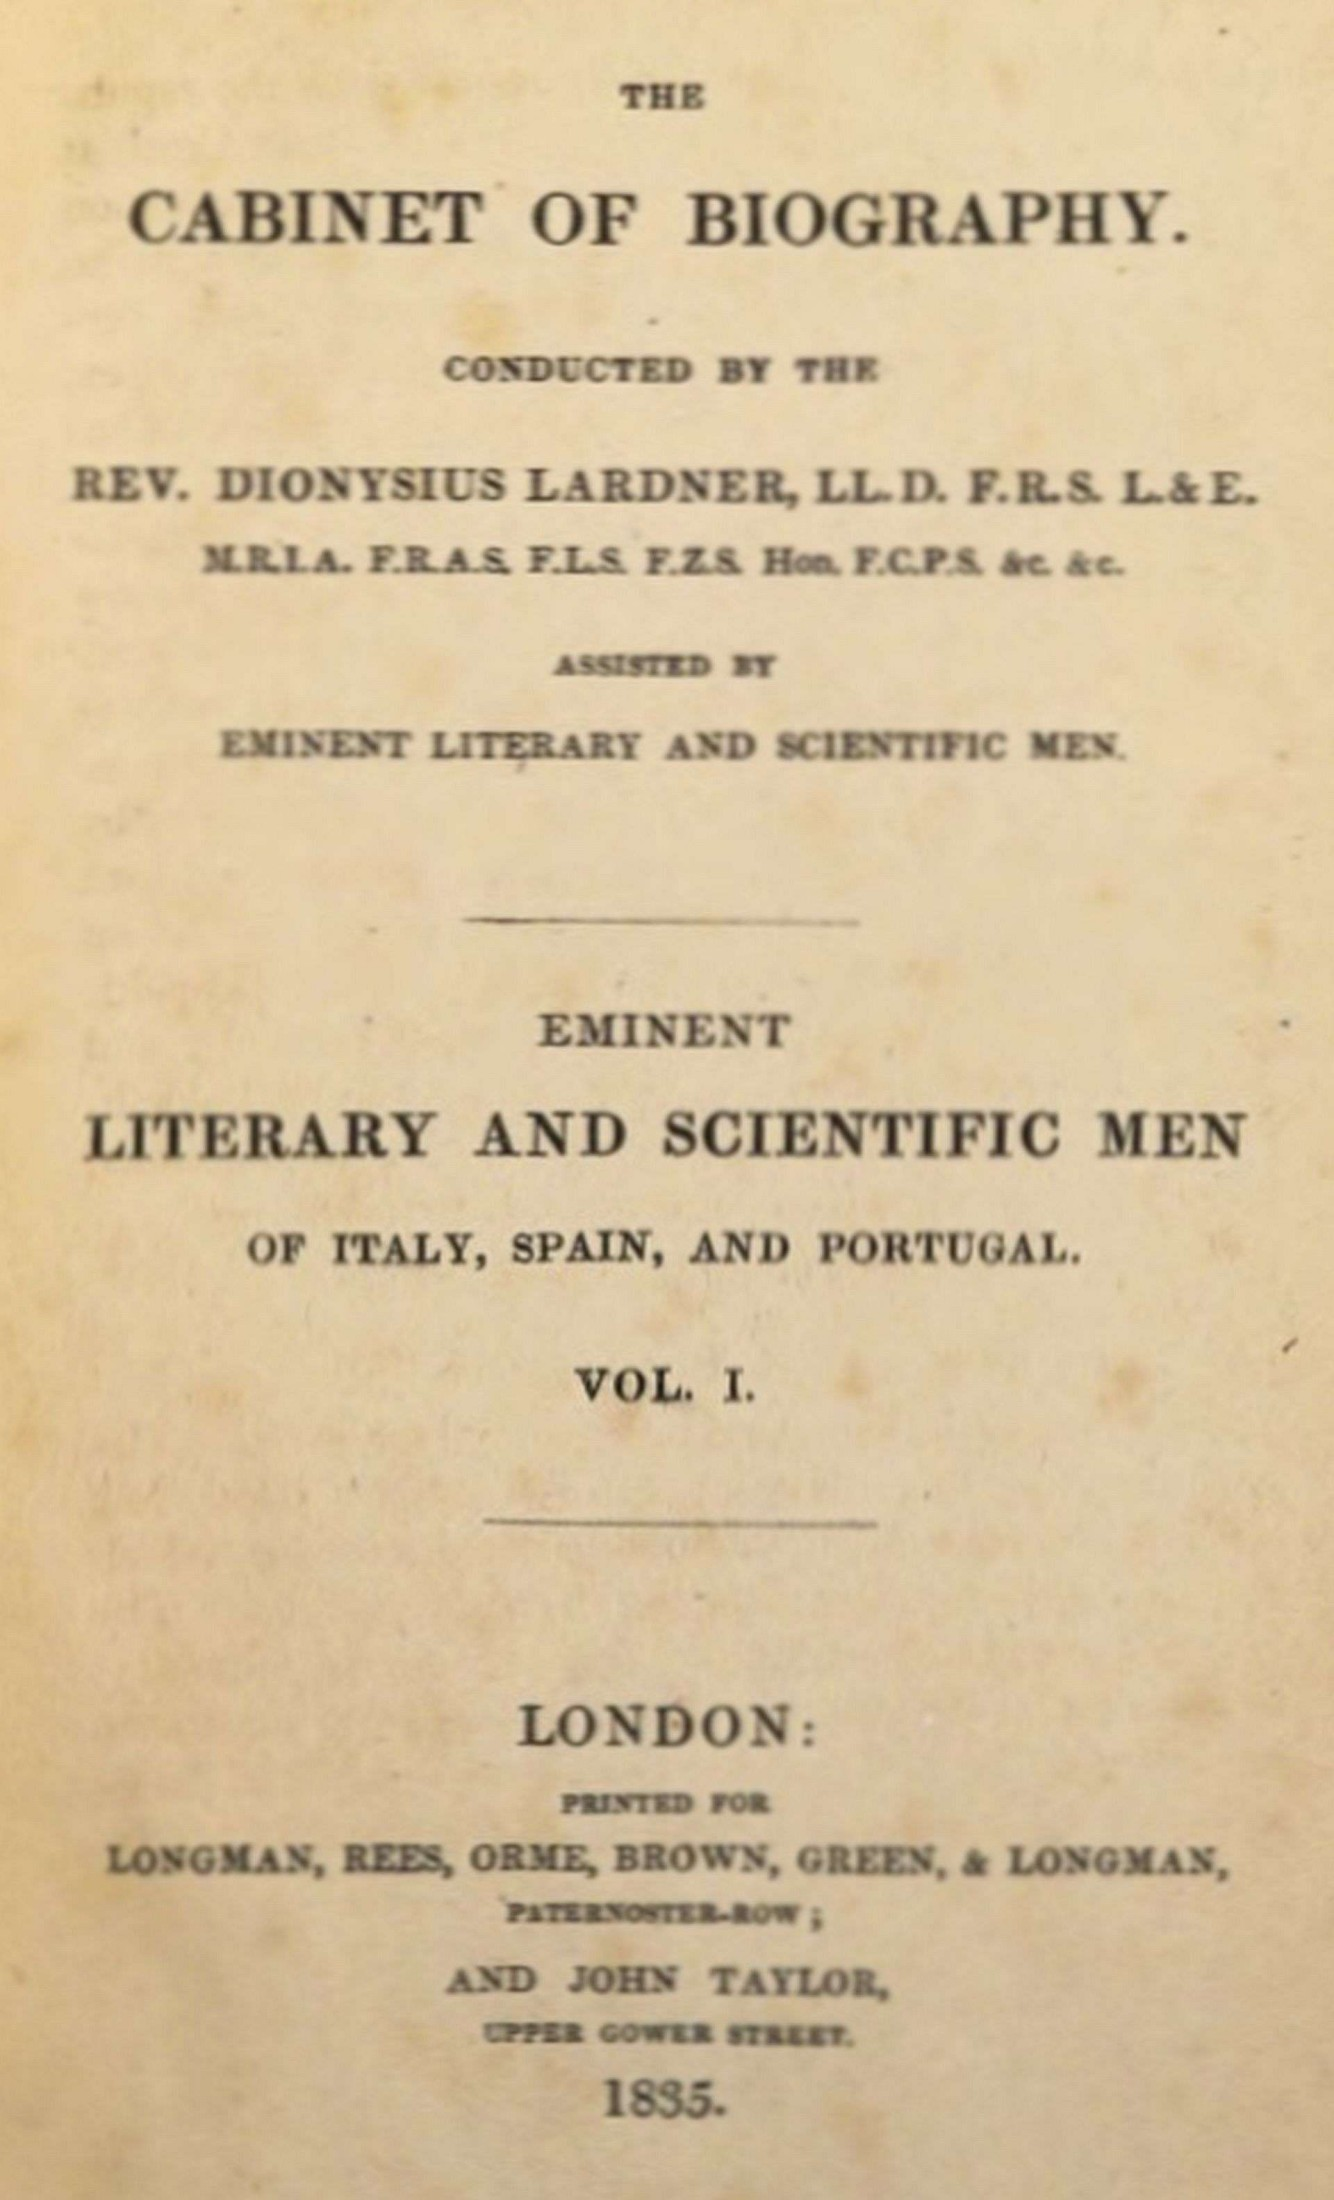 James Montgomery Eminent literary and scientific men of Italy, Spain, and Portugal. Vol. 1 (of 3)